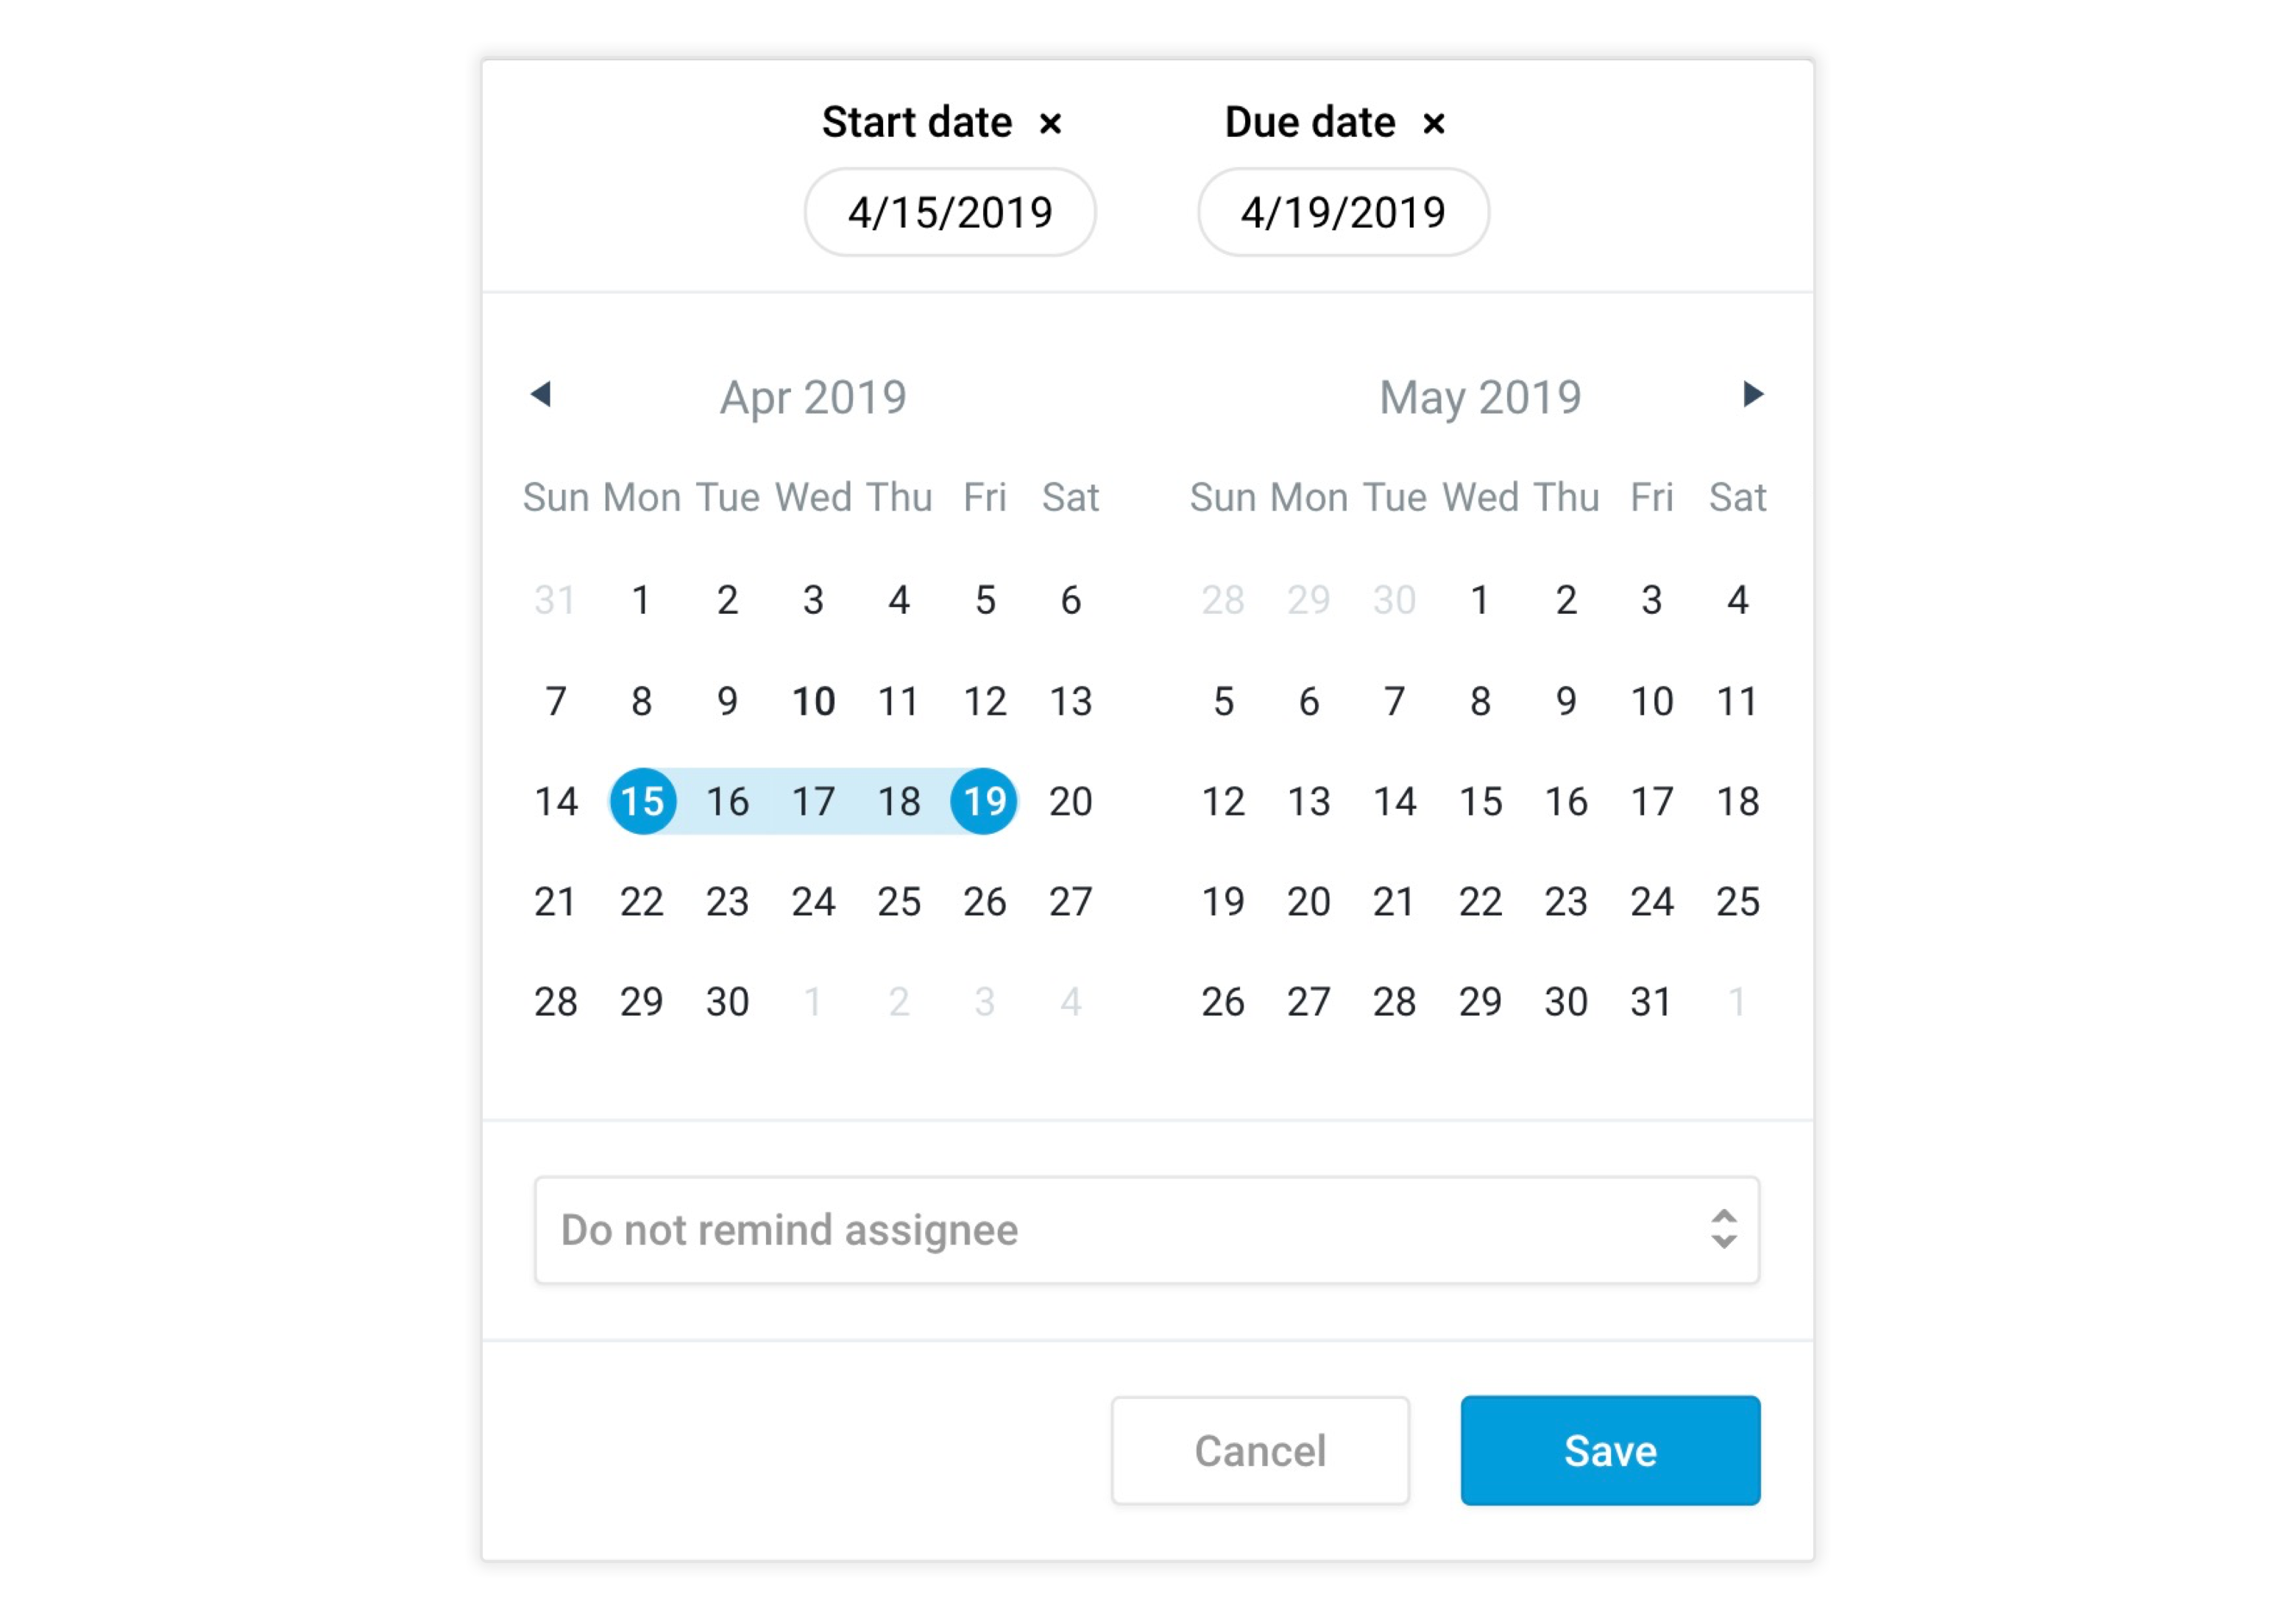 The new date calendar window